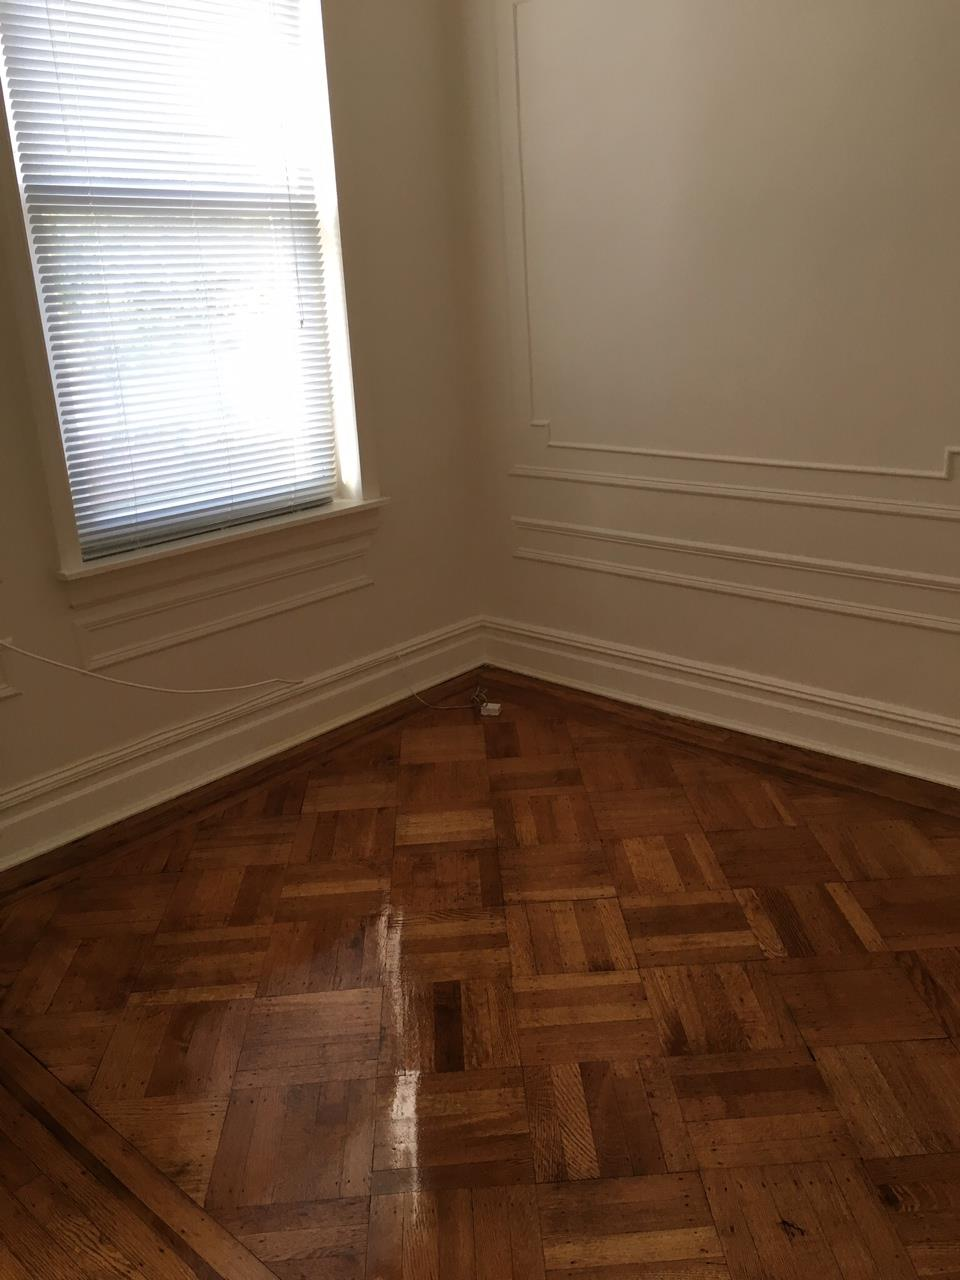 Additional photo for property listing at Bay 8th Street  Brooklyn, New York 11228 United States